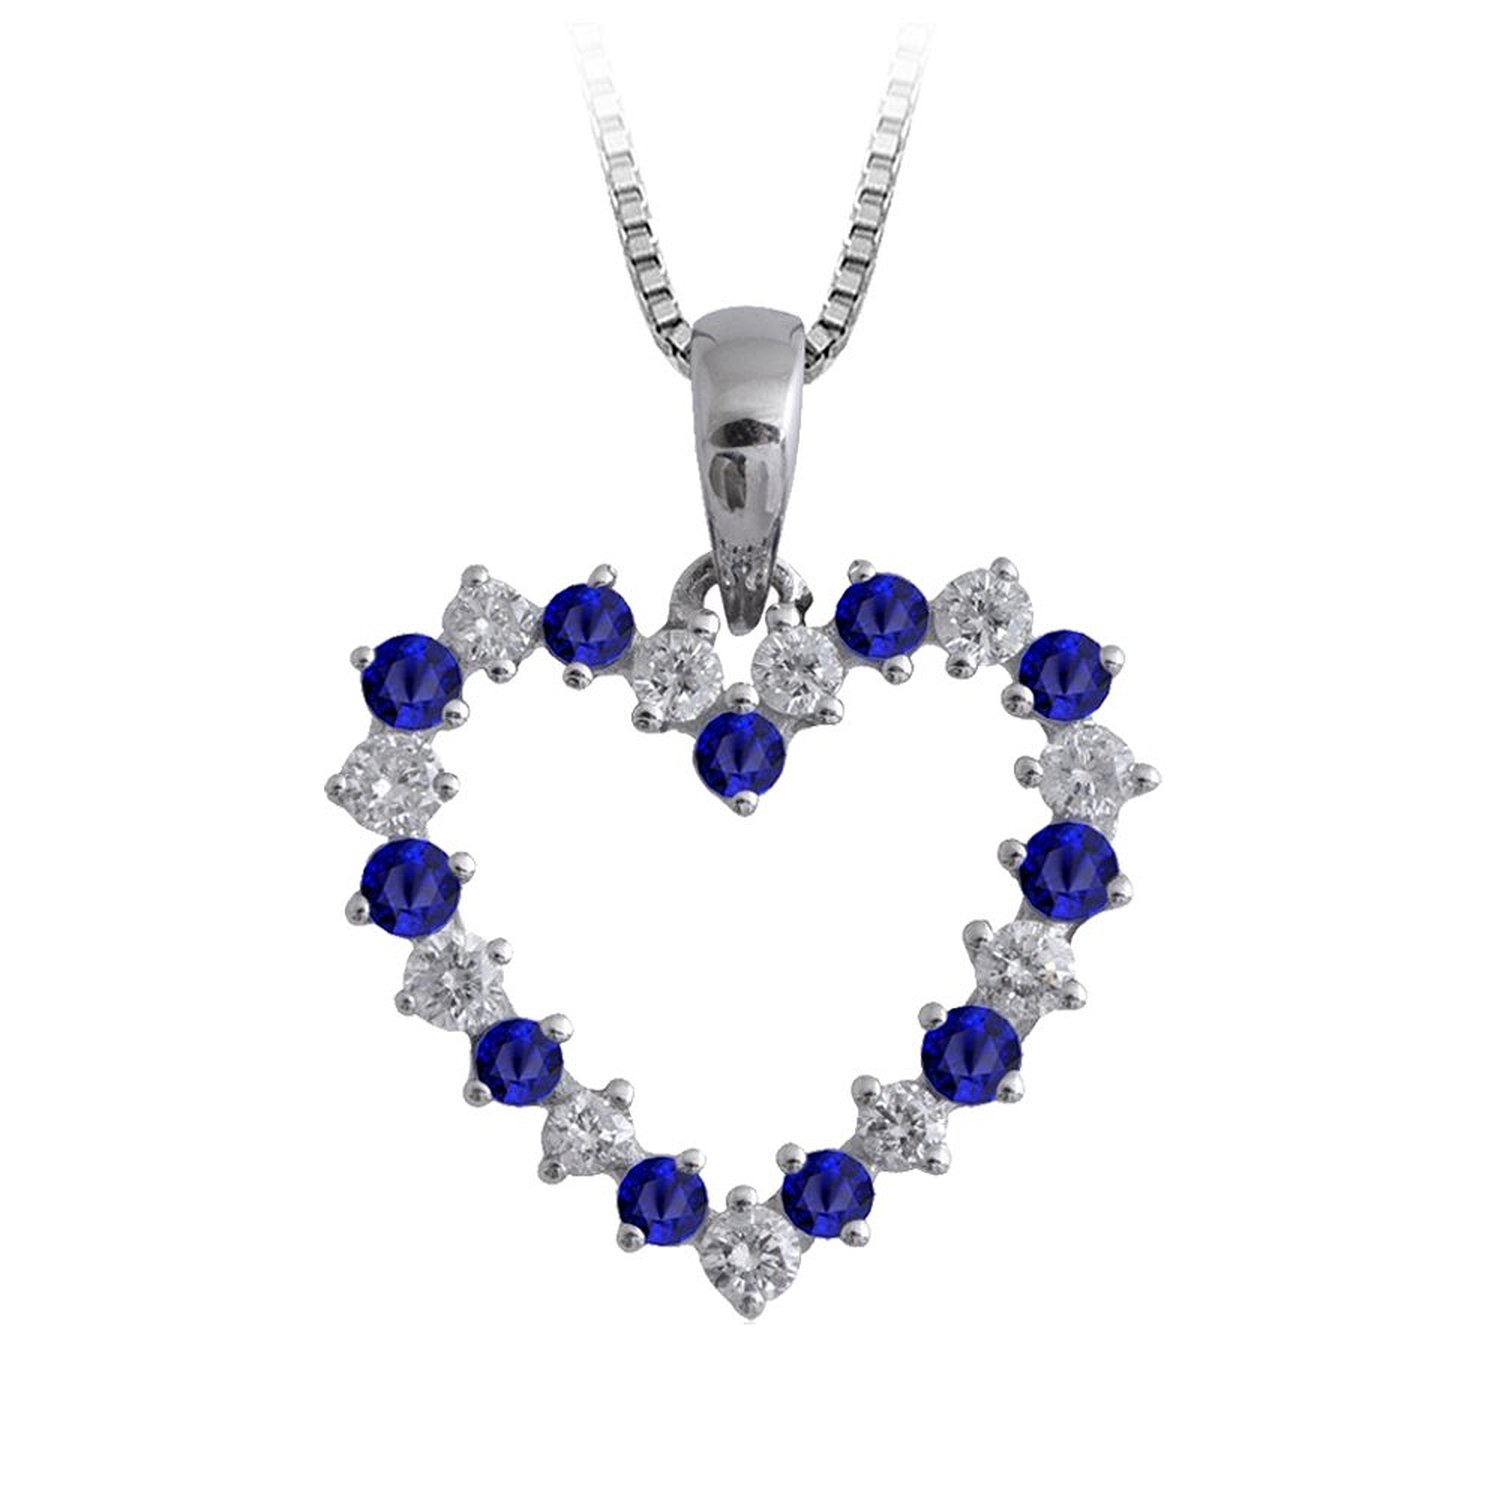 Amazon.com: 14K White Gold Heart Diamond and Sapphire Pendant Necklace (GH, I1-I2, 0.60 ct): Jewelry